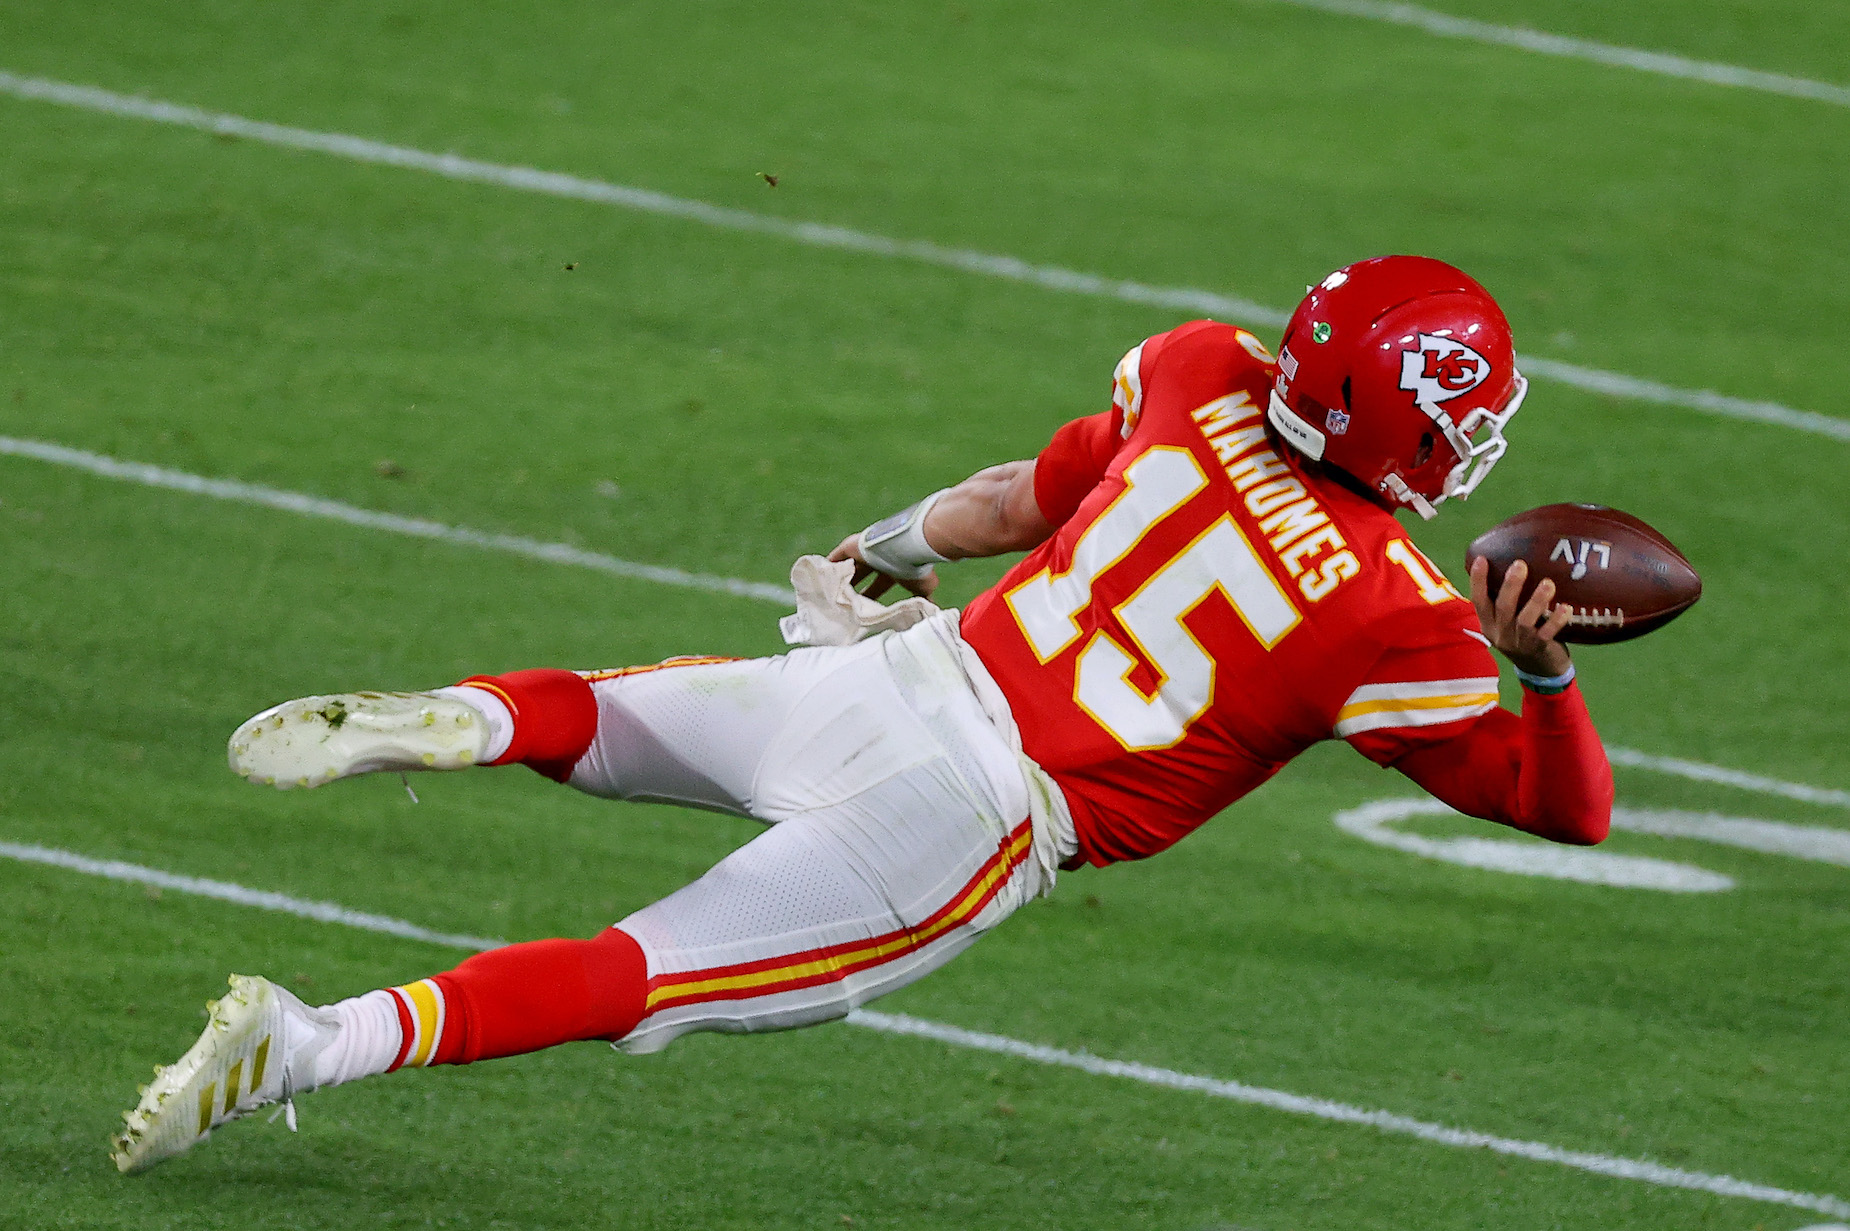 Patrick Mahomes Suffered a Heavy Defeat in the Super Bowl, but He Still Impressed the Tampa Bay Buccaneers in the Process